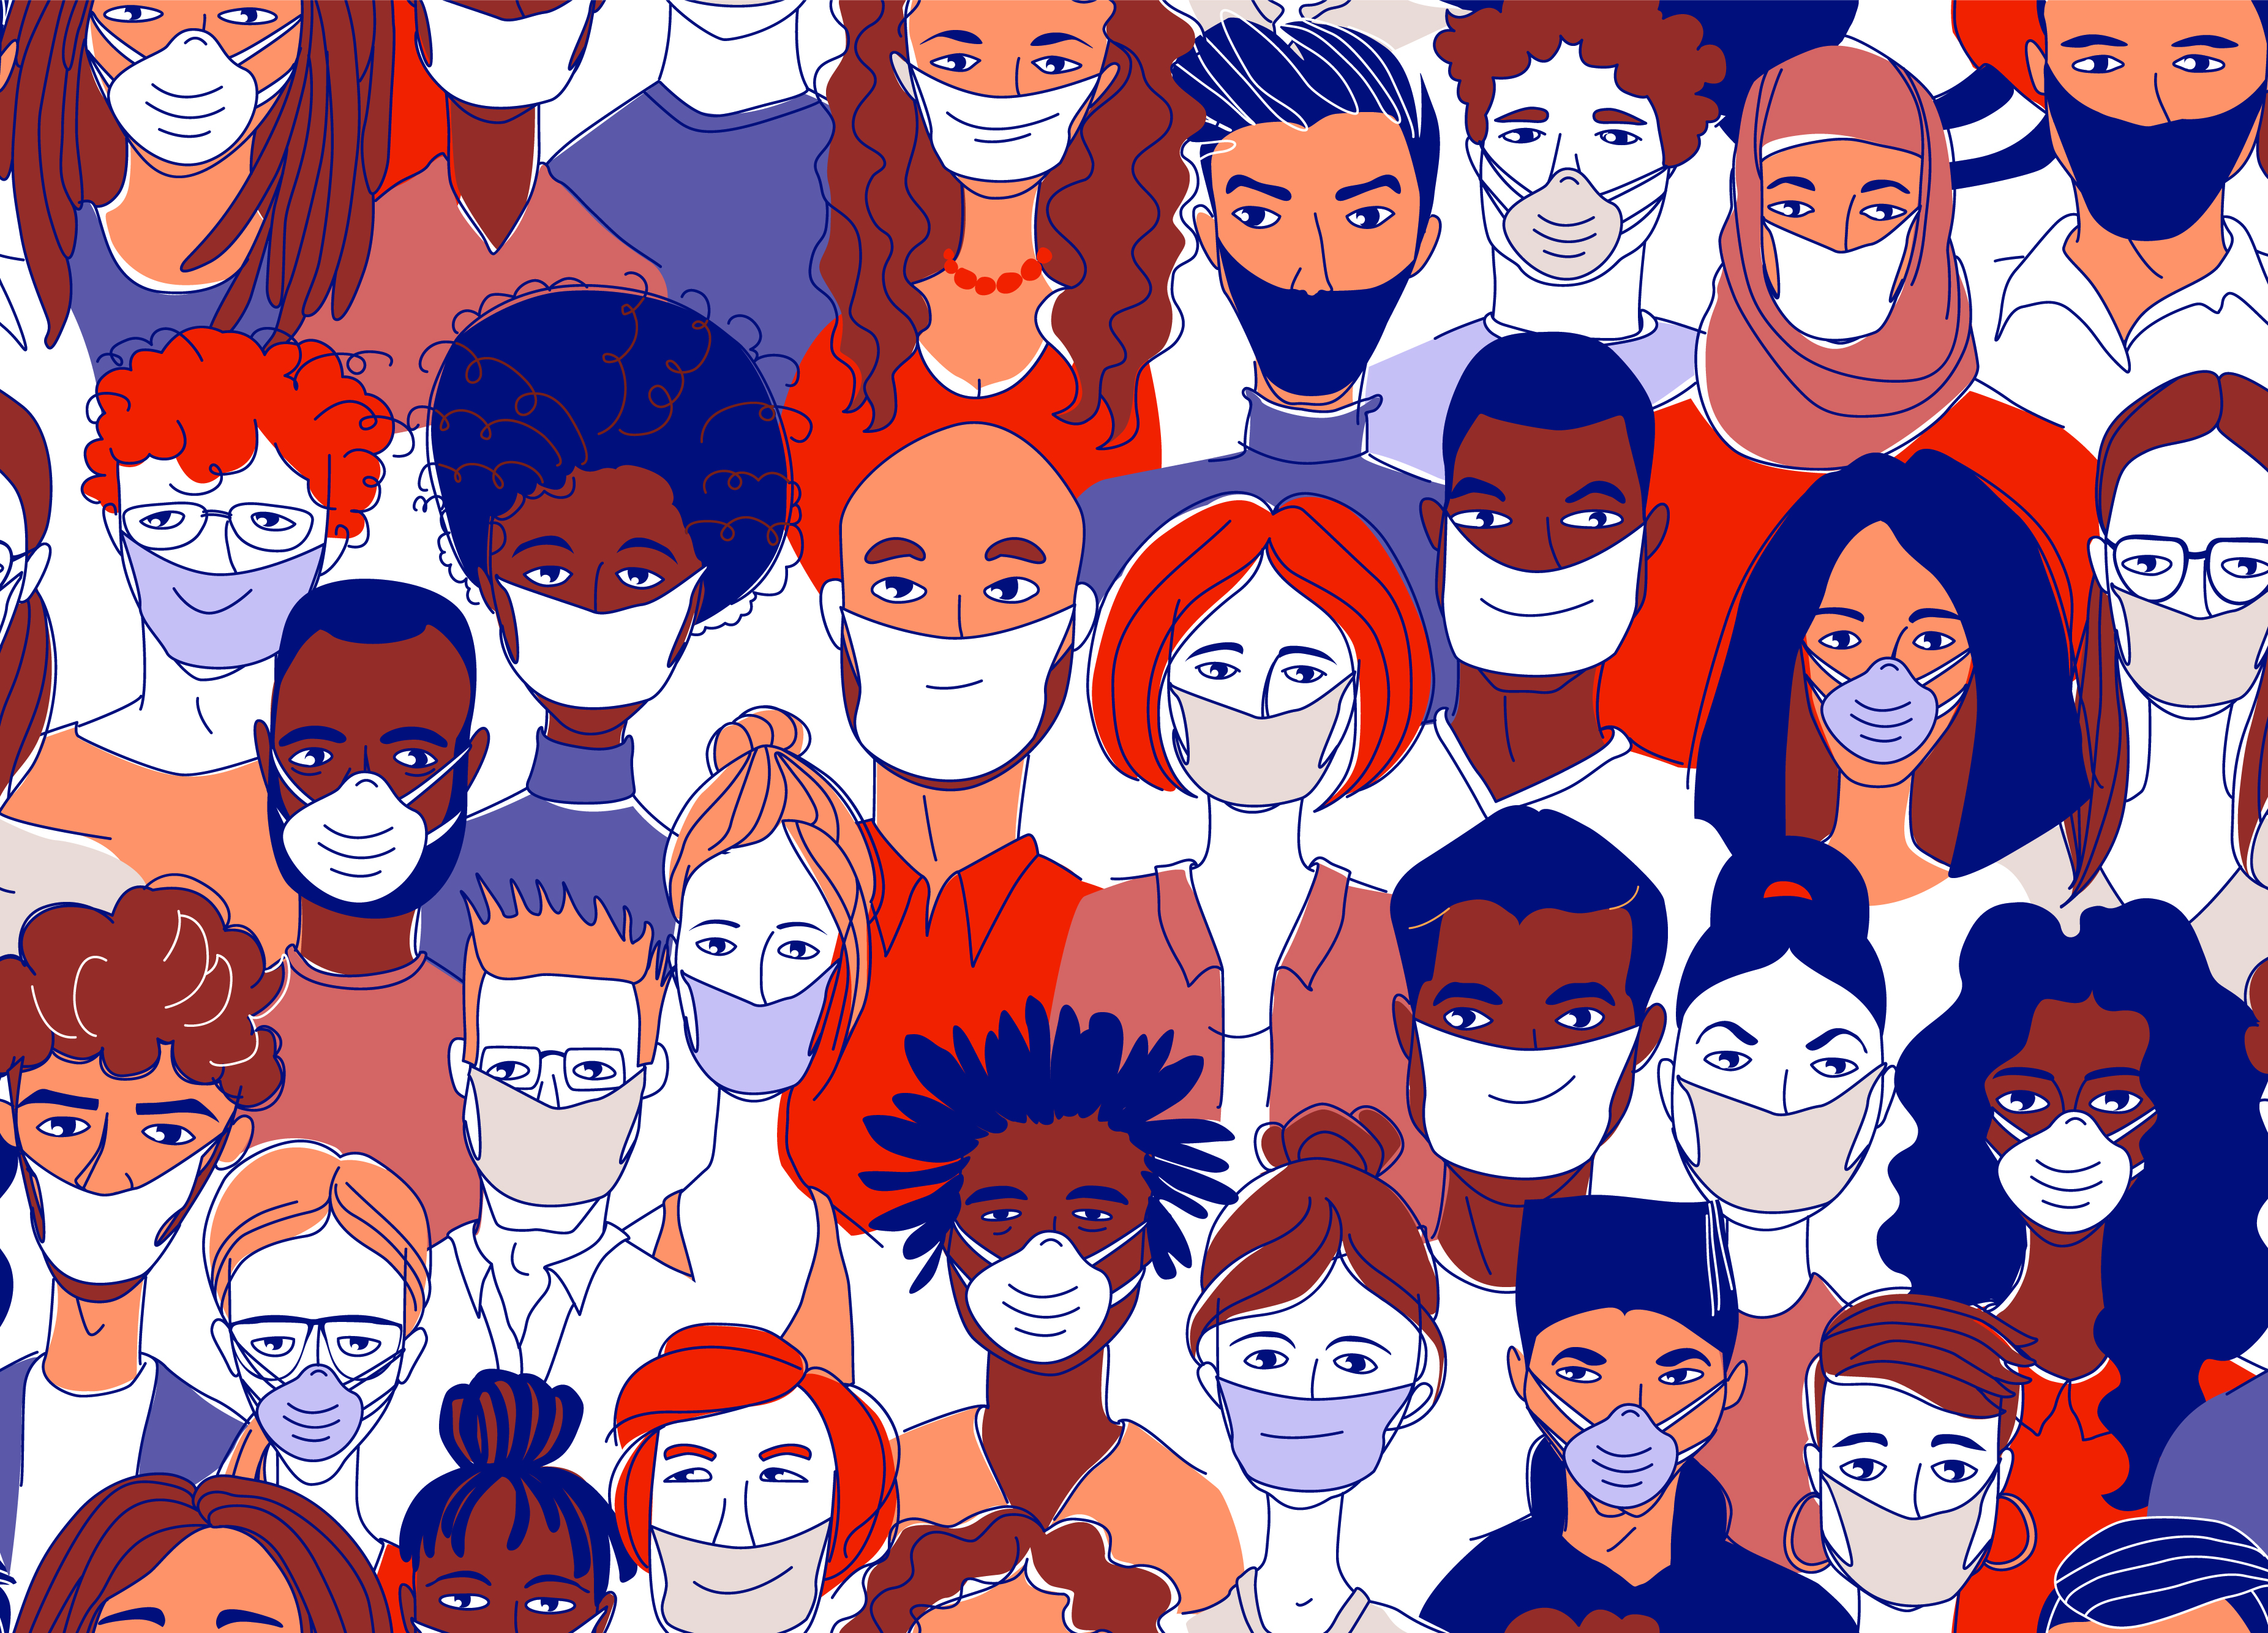 group of diverse people wearing masks